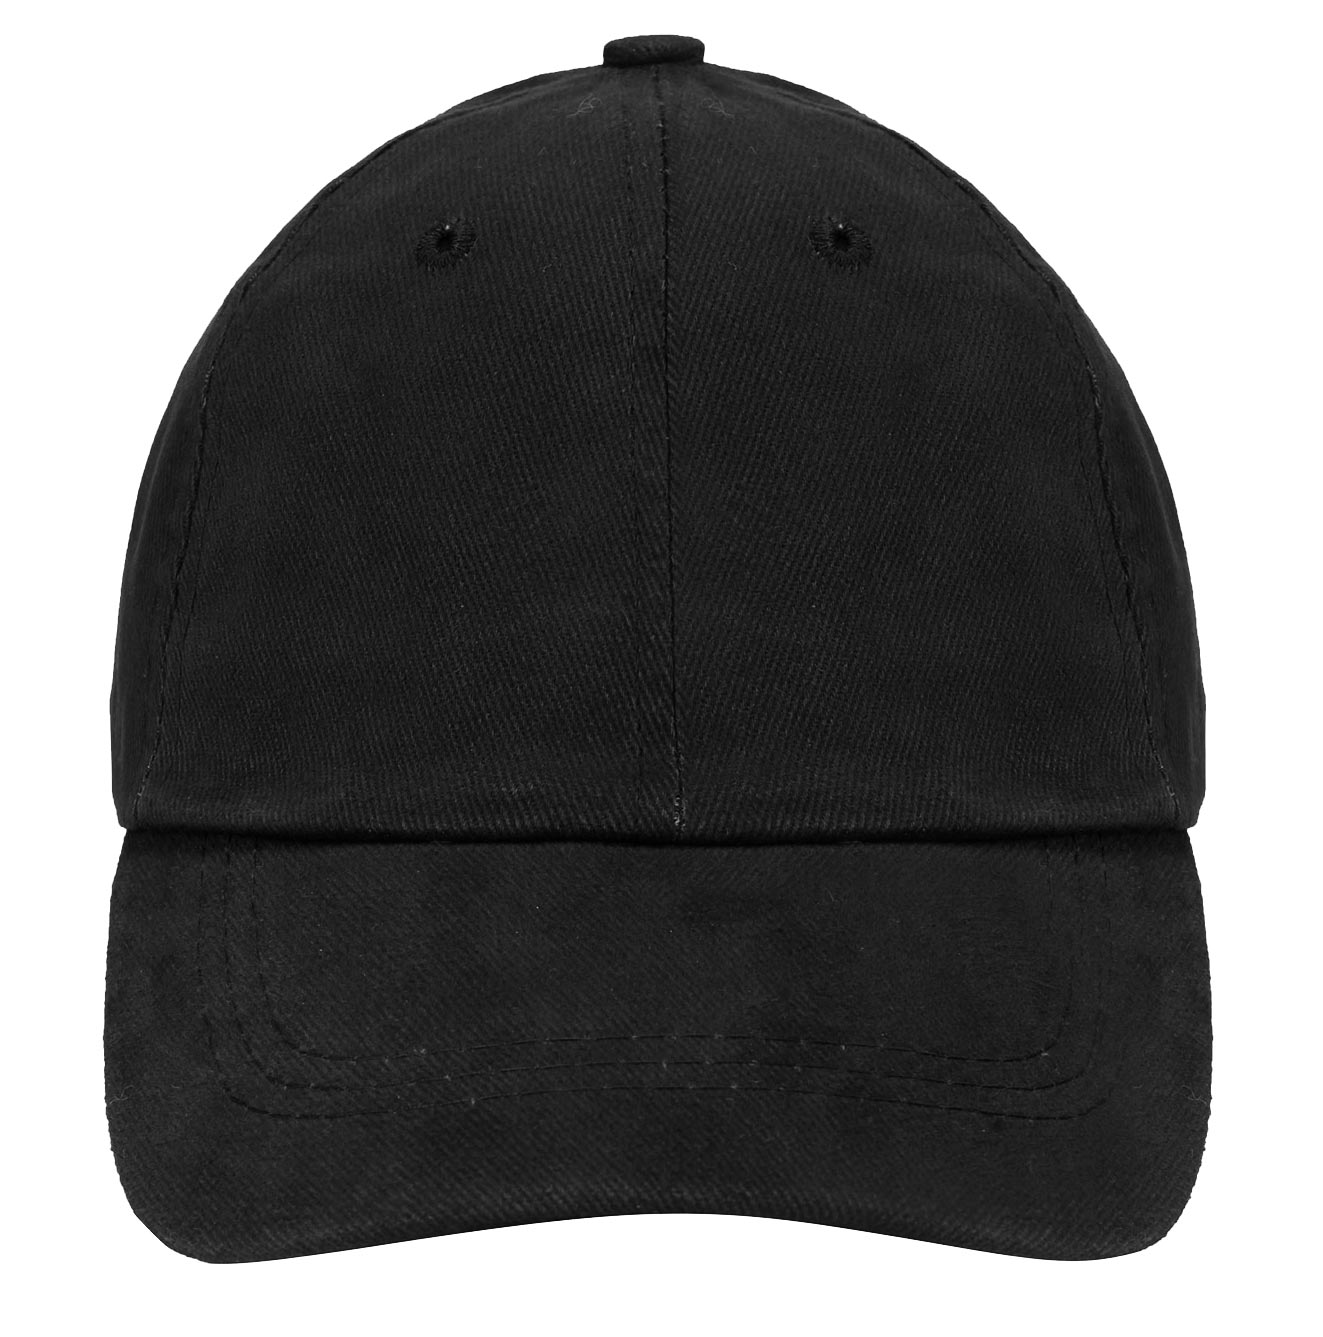 Unconstructed Heavy Brushed Cotton Cap